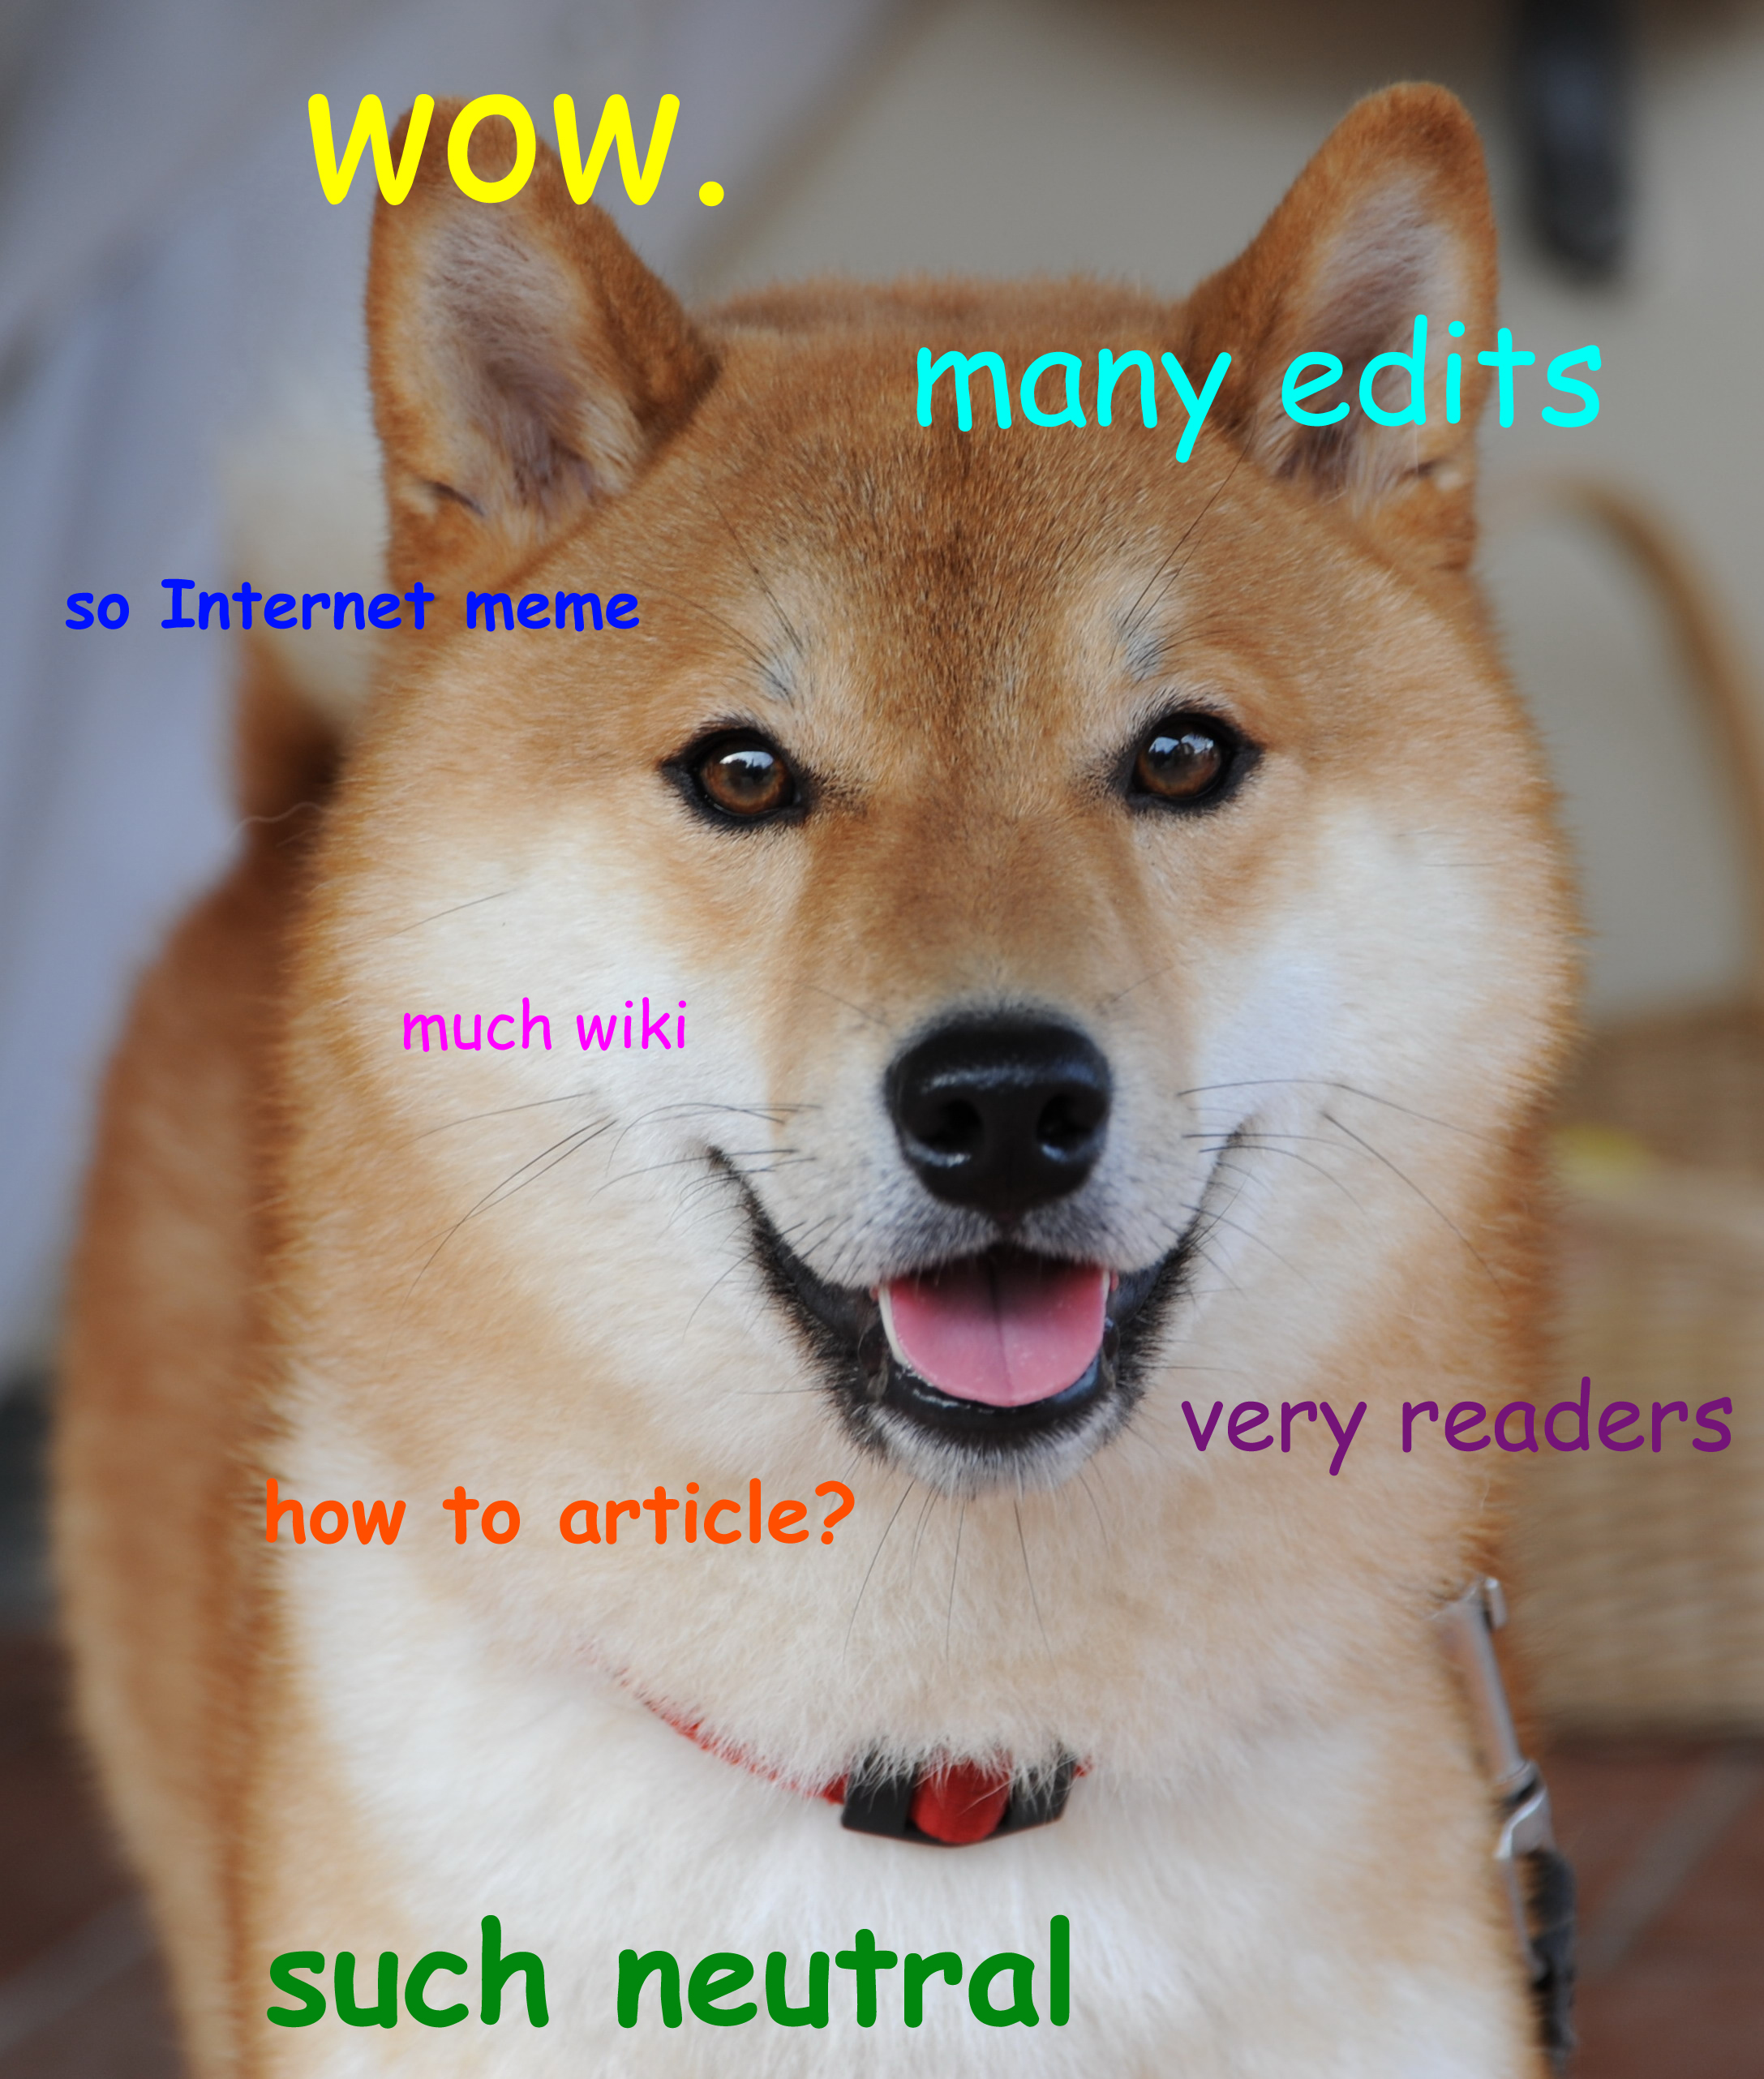 Image of a dog with multicolored statements overlaid: wow. many edits. so internet meme. much wiki. very readers. how to article? such neutral.